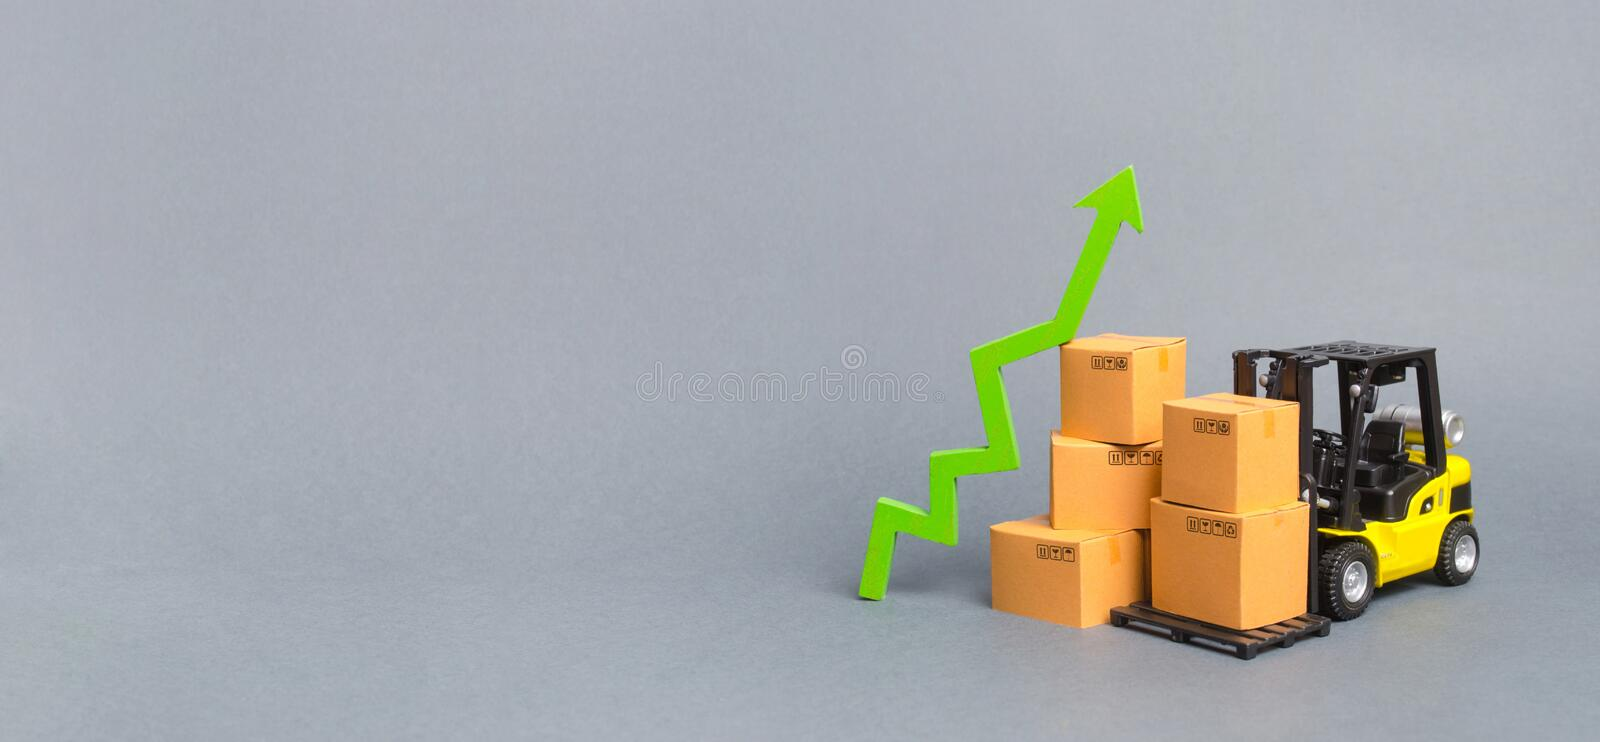 Forklift truck with cardboard boxes and a green arrow up. growth rate of production goods and products, economic raise. Increasing consumer demand. exports royalty free stock images